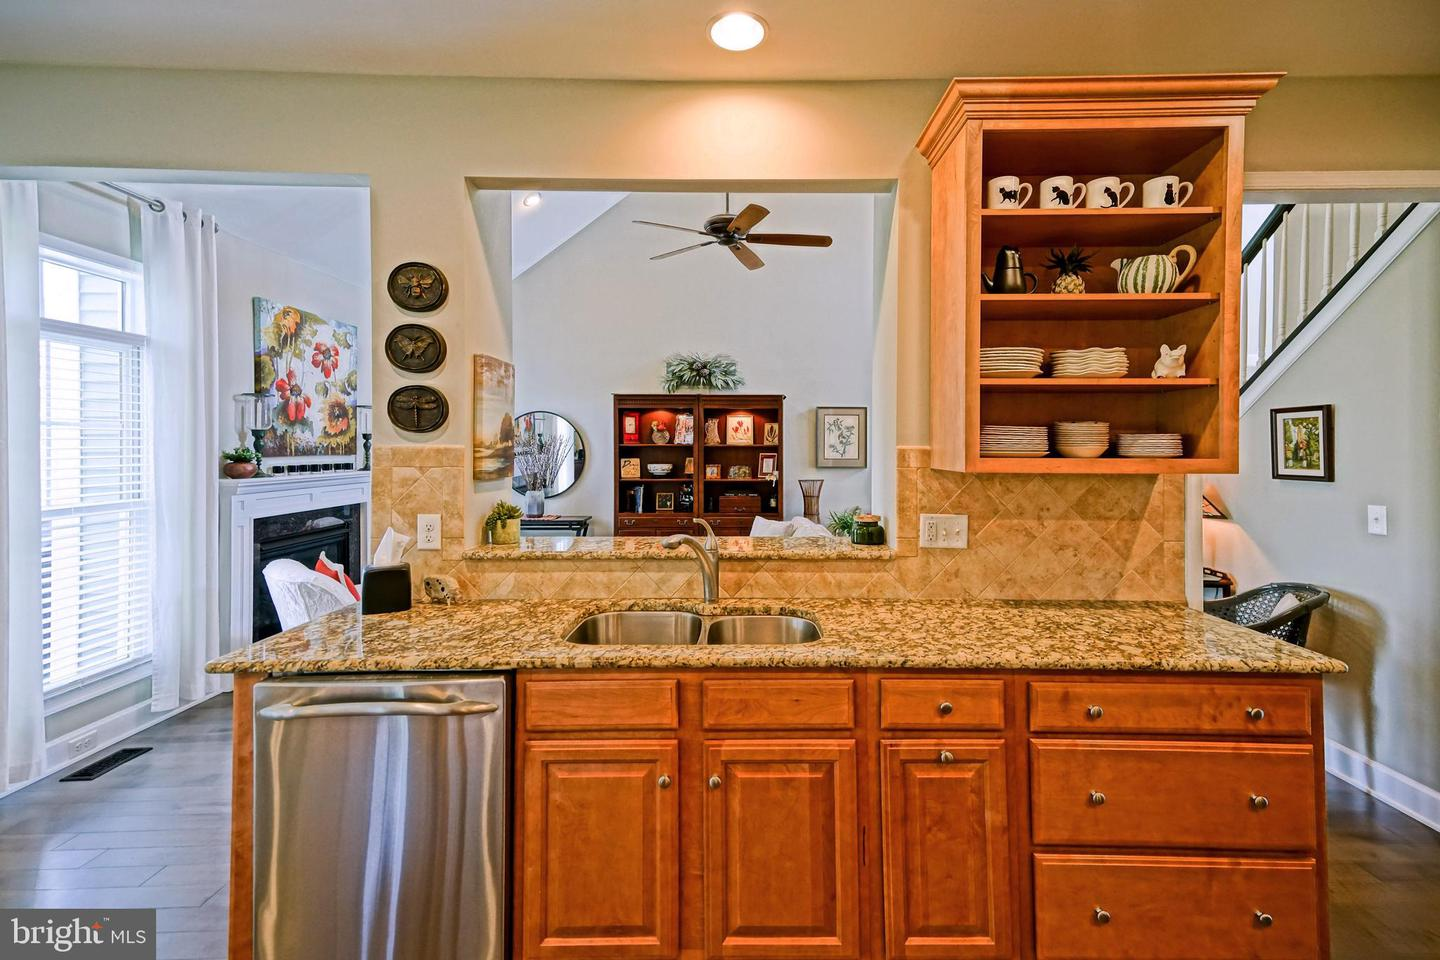 DESU139128-301667379355-2019-08-05-10-43-55 35222 Overfalls Dr N | Lewes, DE Real Estate For Sale | MLS# Desu139128  - Lee Ann Group